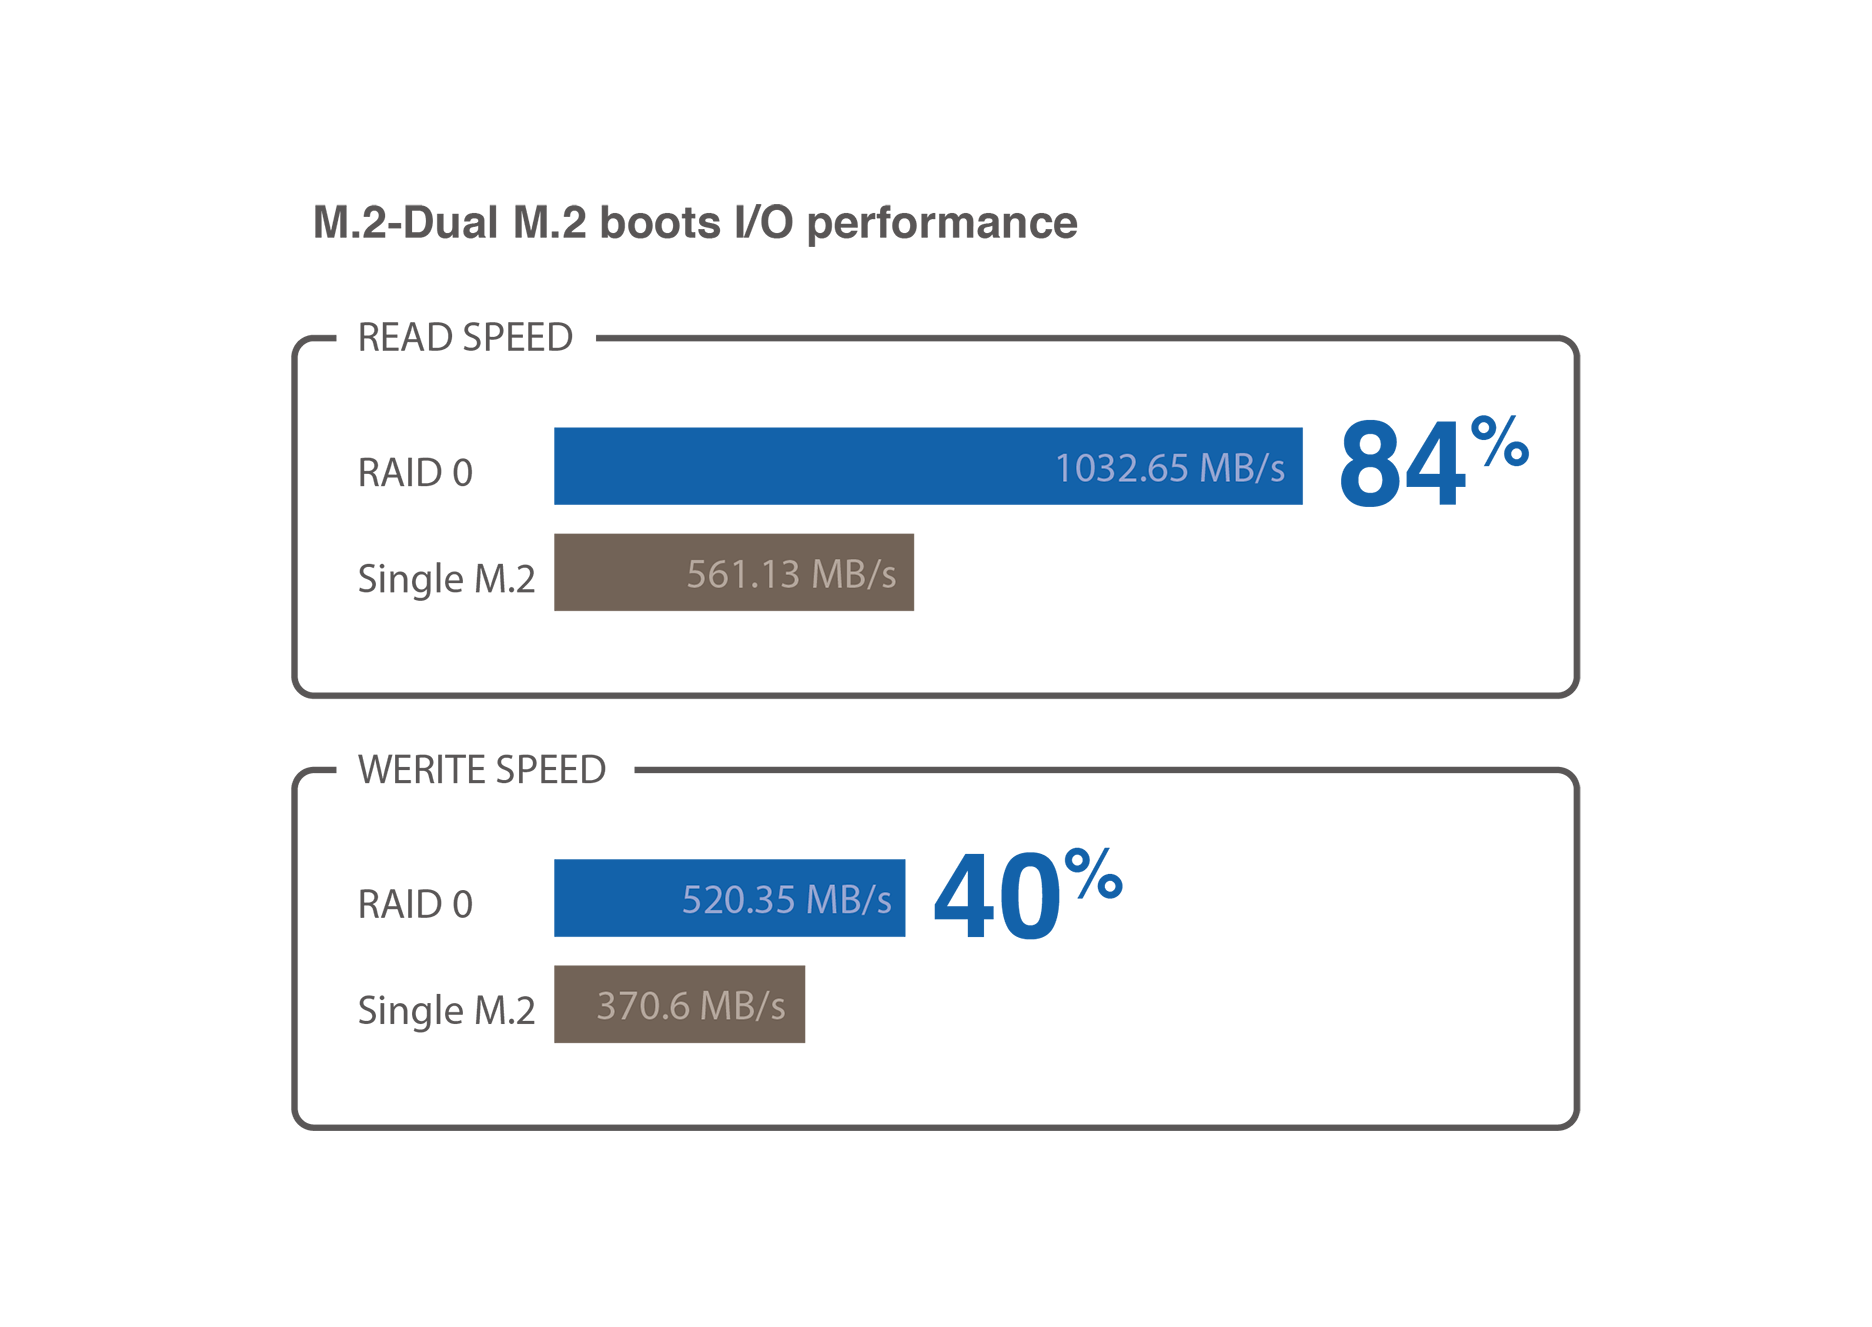 Flexible expansion for better storage and networking